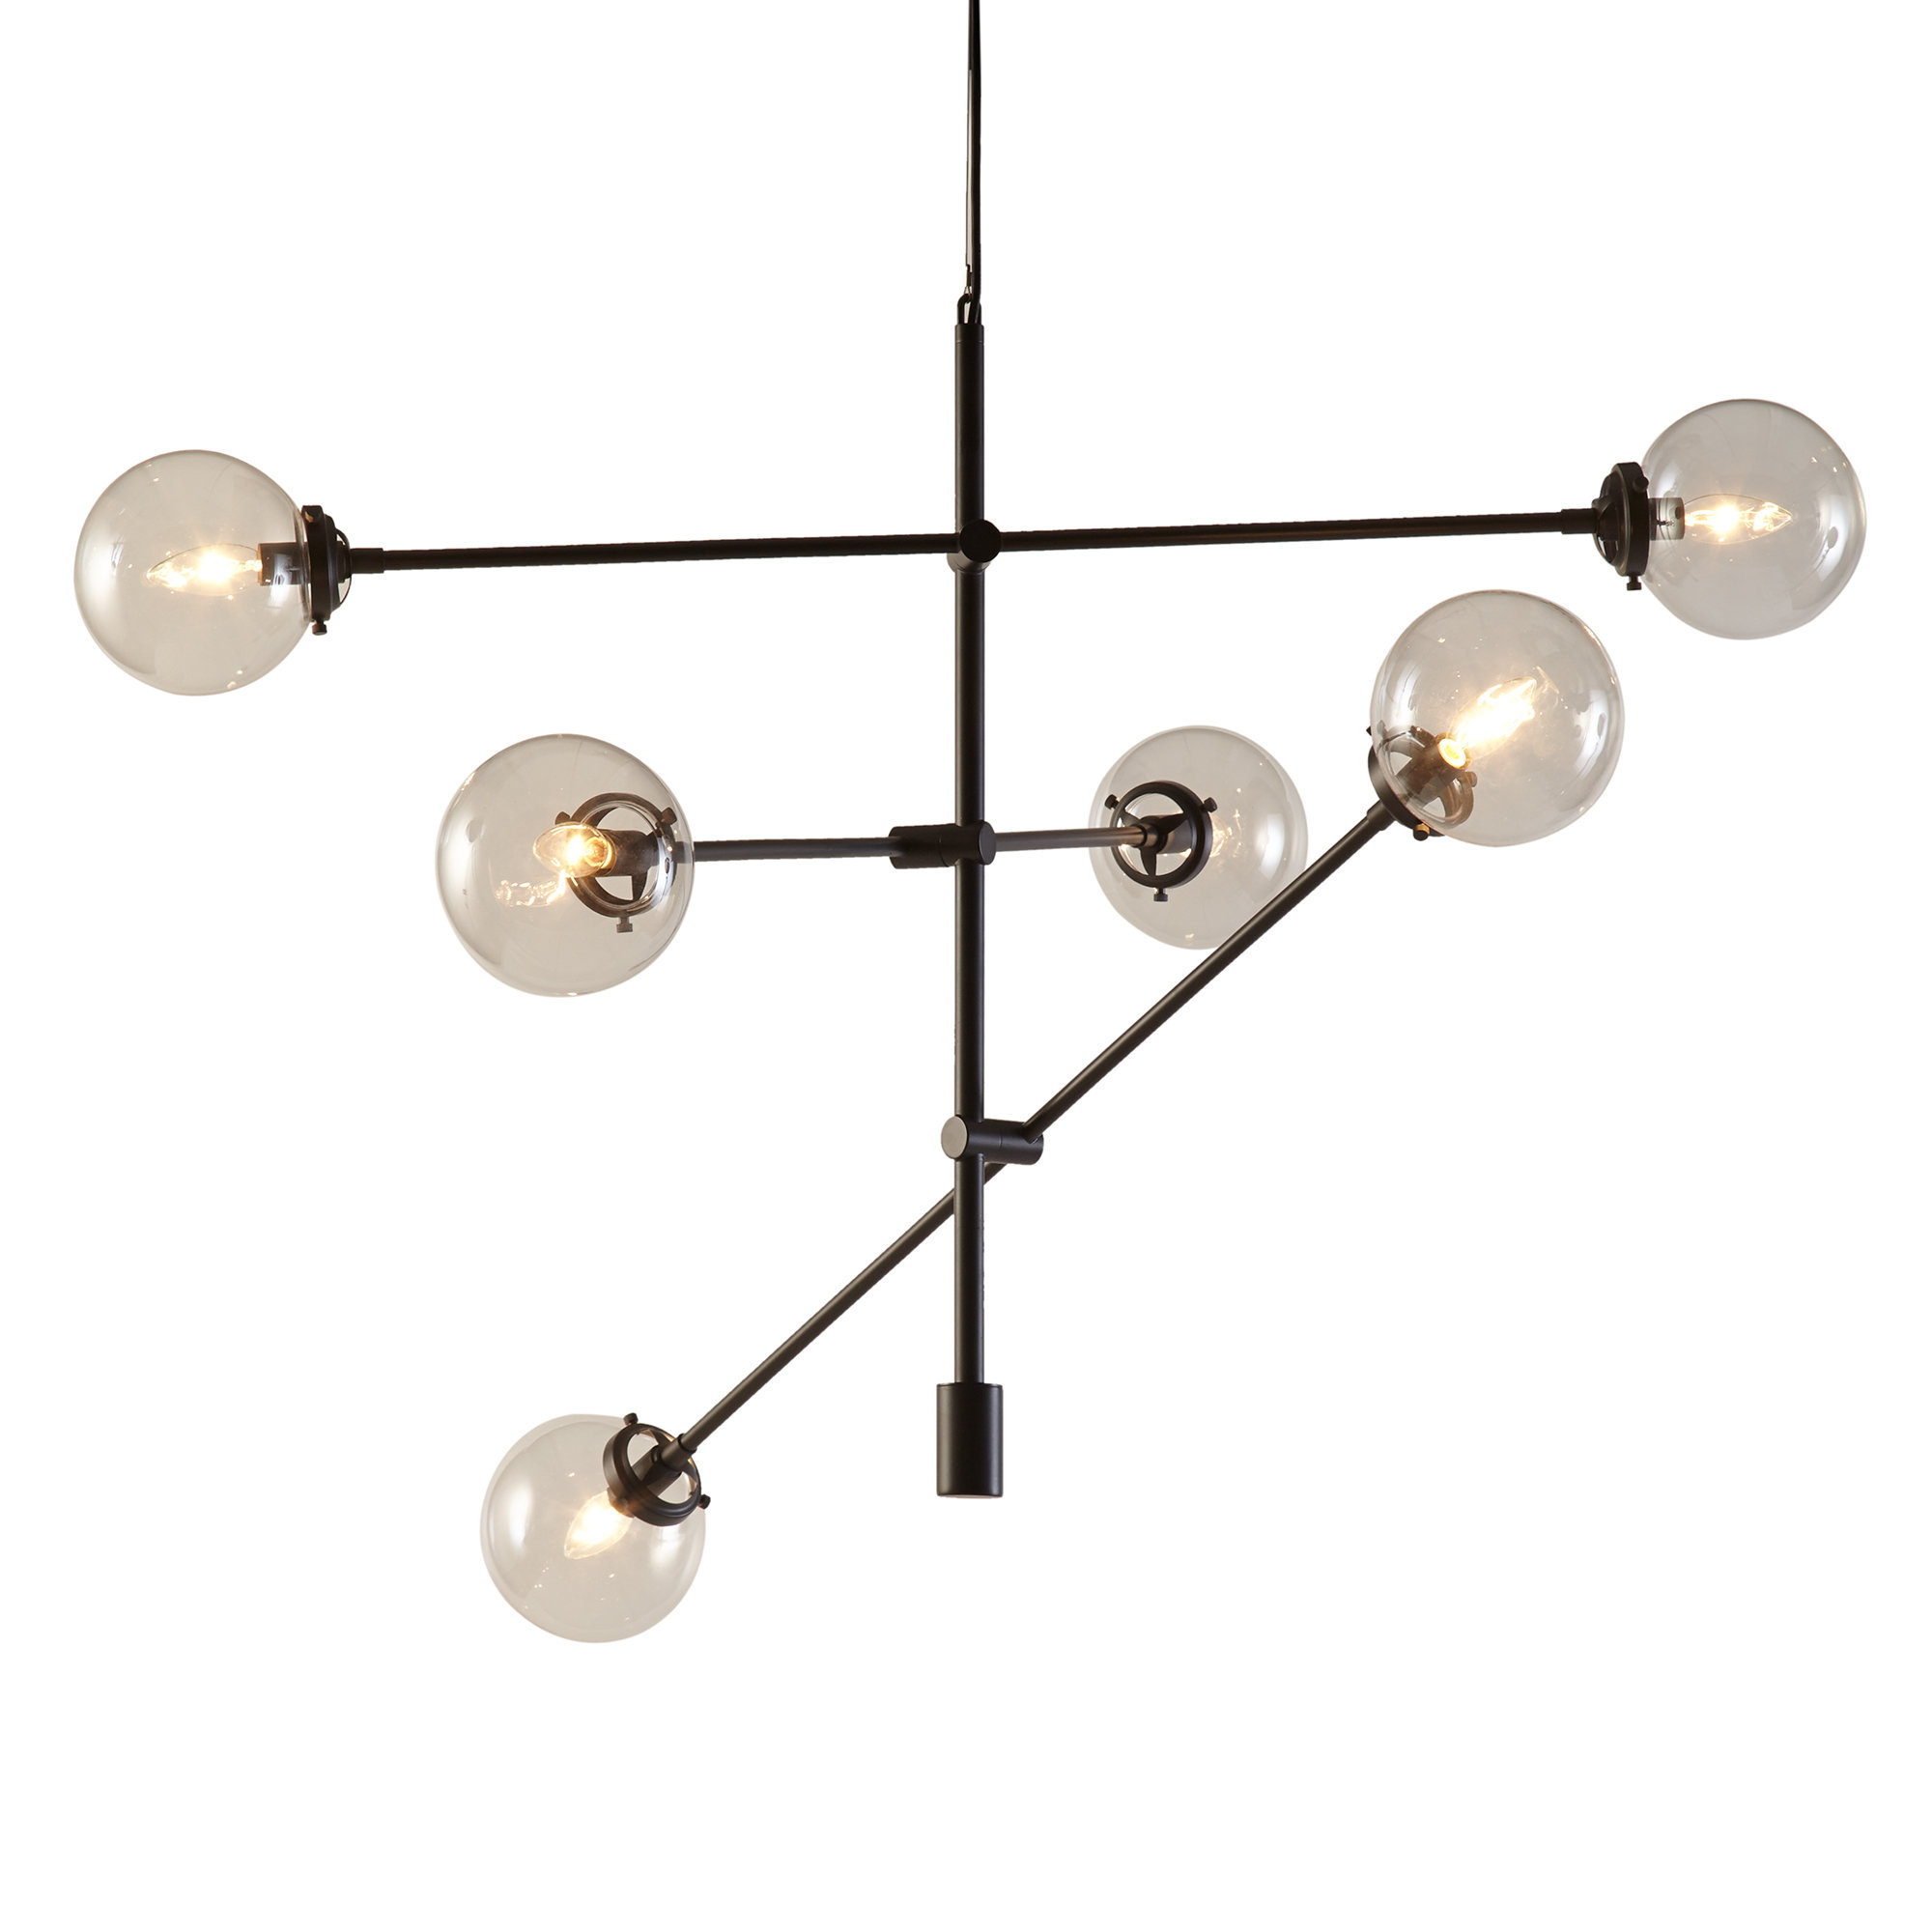 Bailey Antique 6-Light Sputnik Chandelier for Asher 12-Light Sputnik Chandeliers (Image 7 of 30)